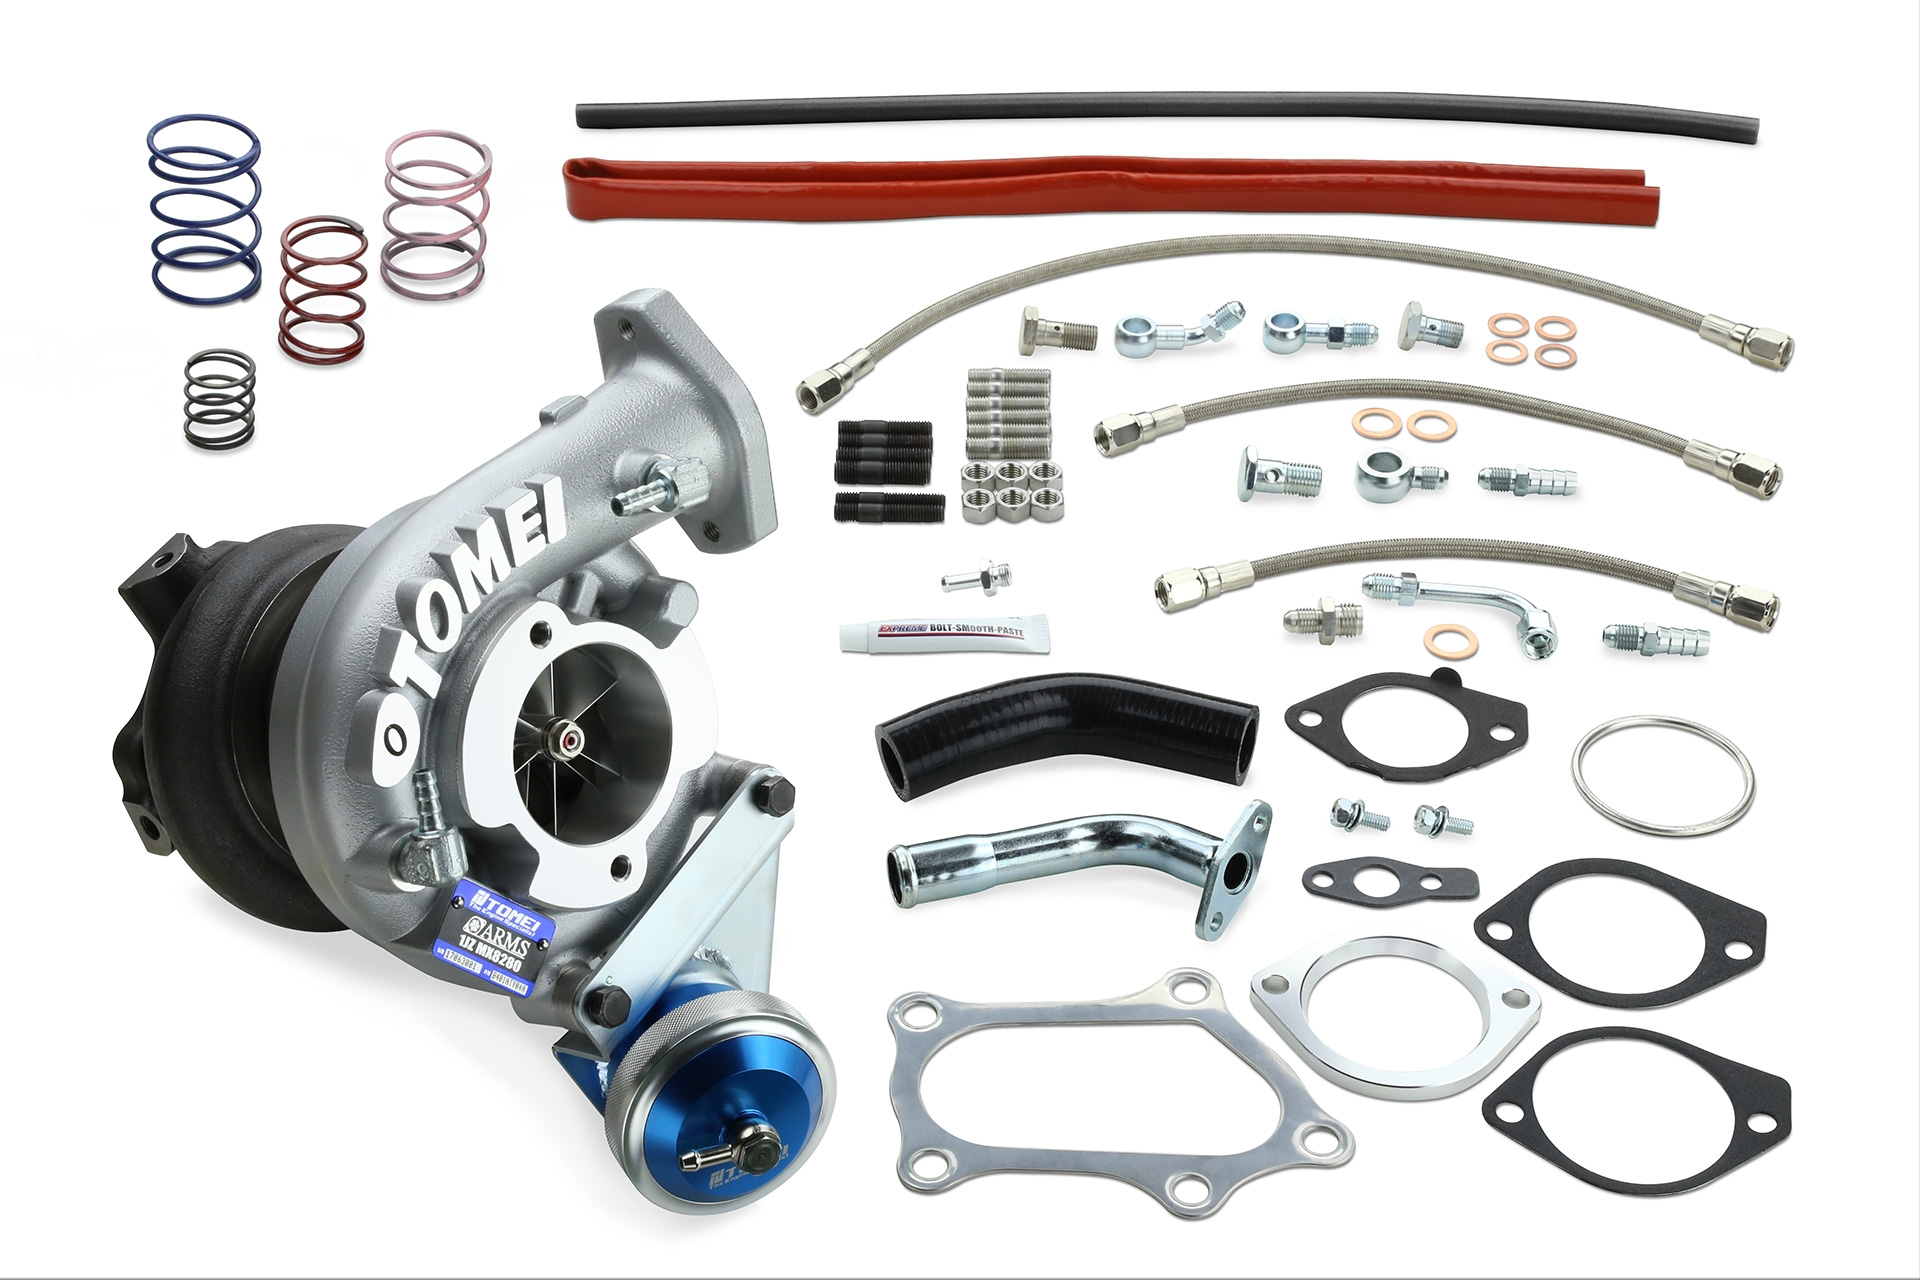 Tomei Turbocharger Kit Arms MX8280 1JZ-GTE